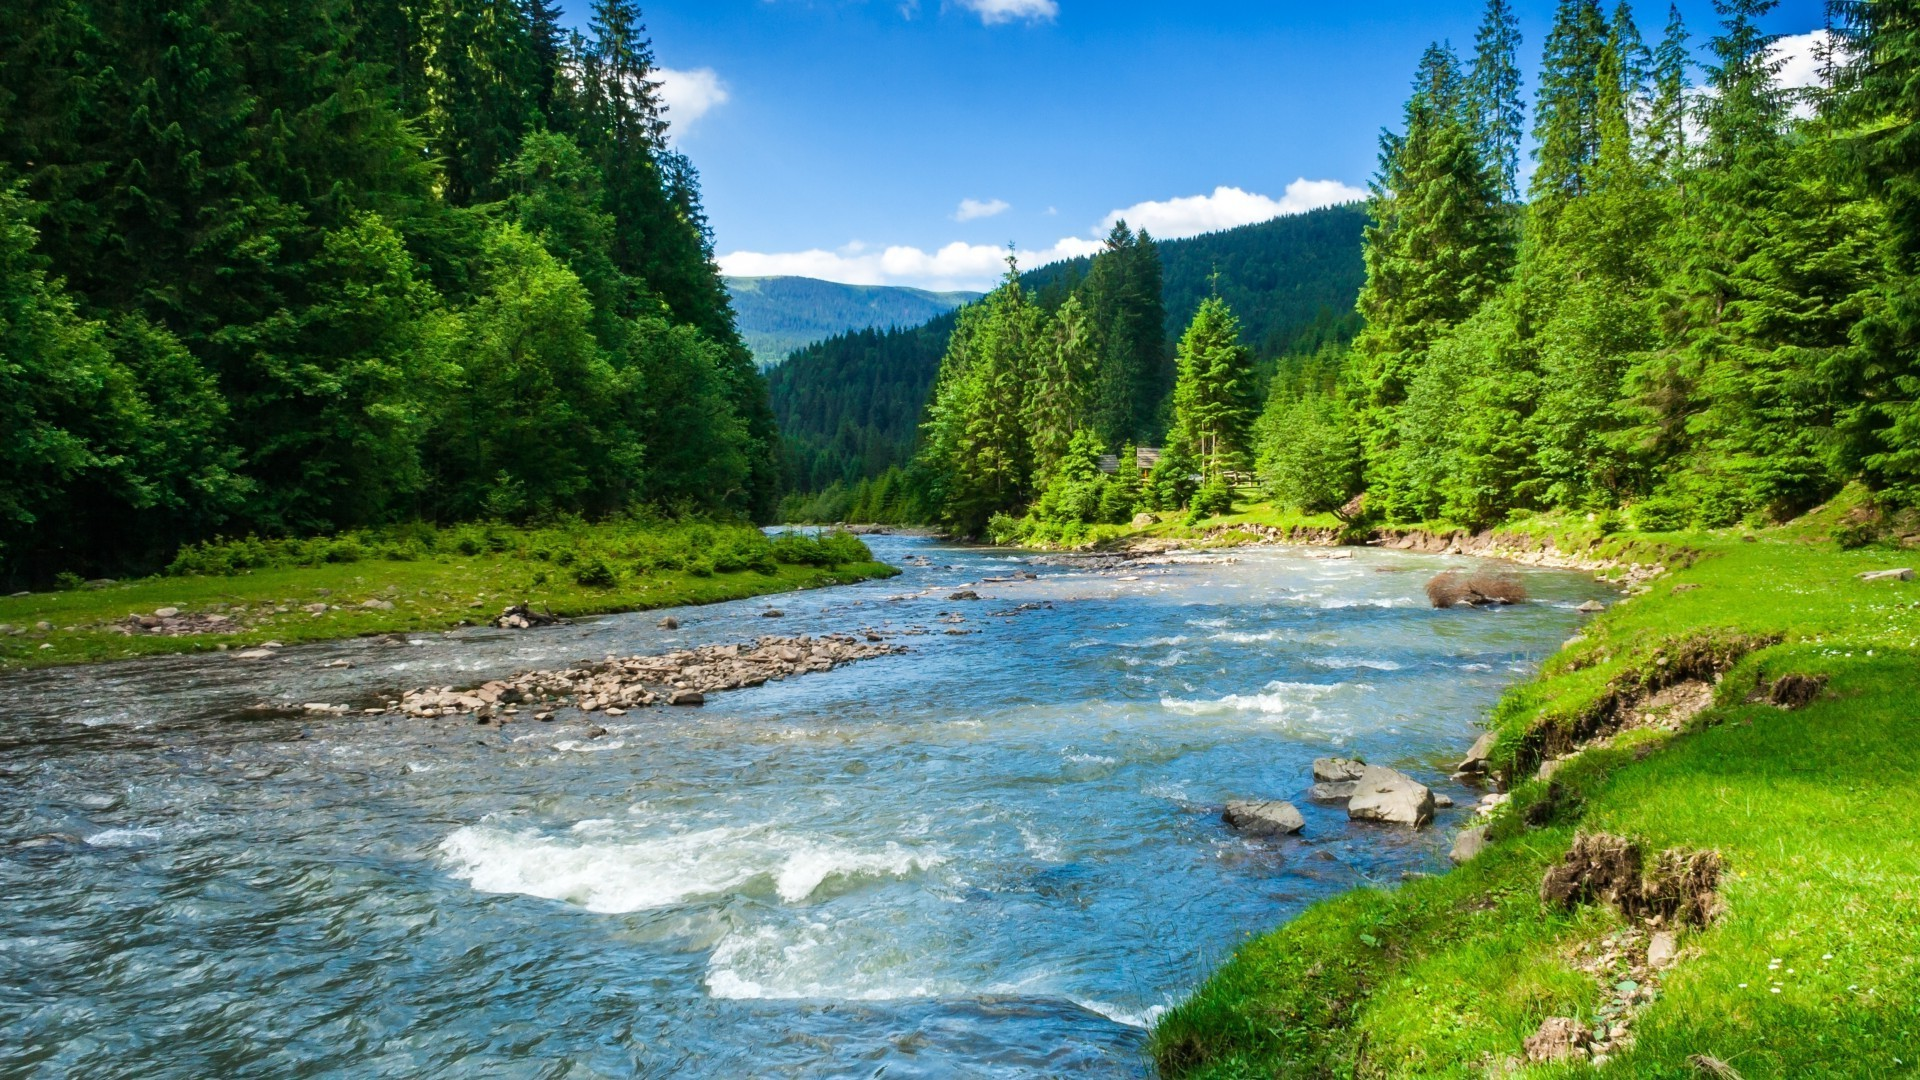 rivers ponds and streams water river nature outdoors travel wood landscape tree stream summer scenic mountain lake daylight rock sky